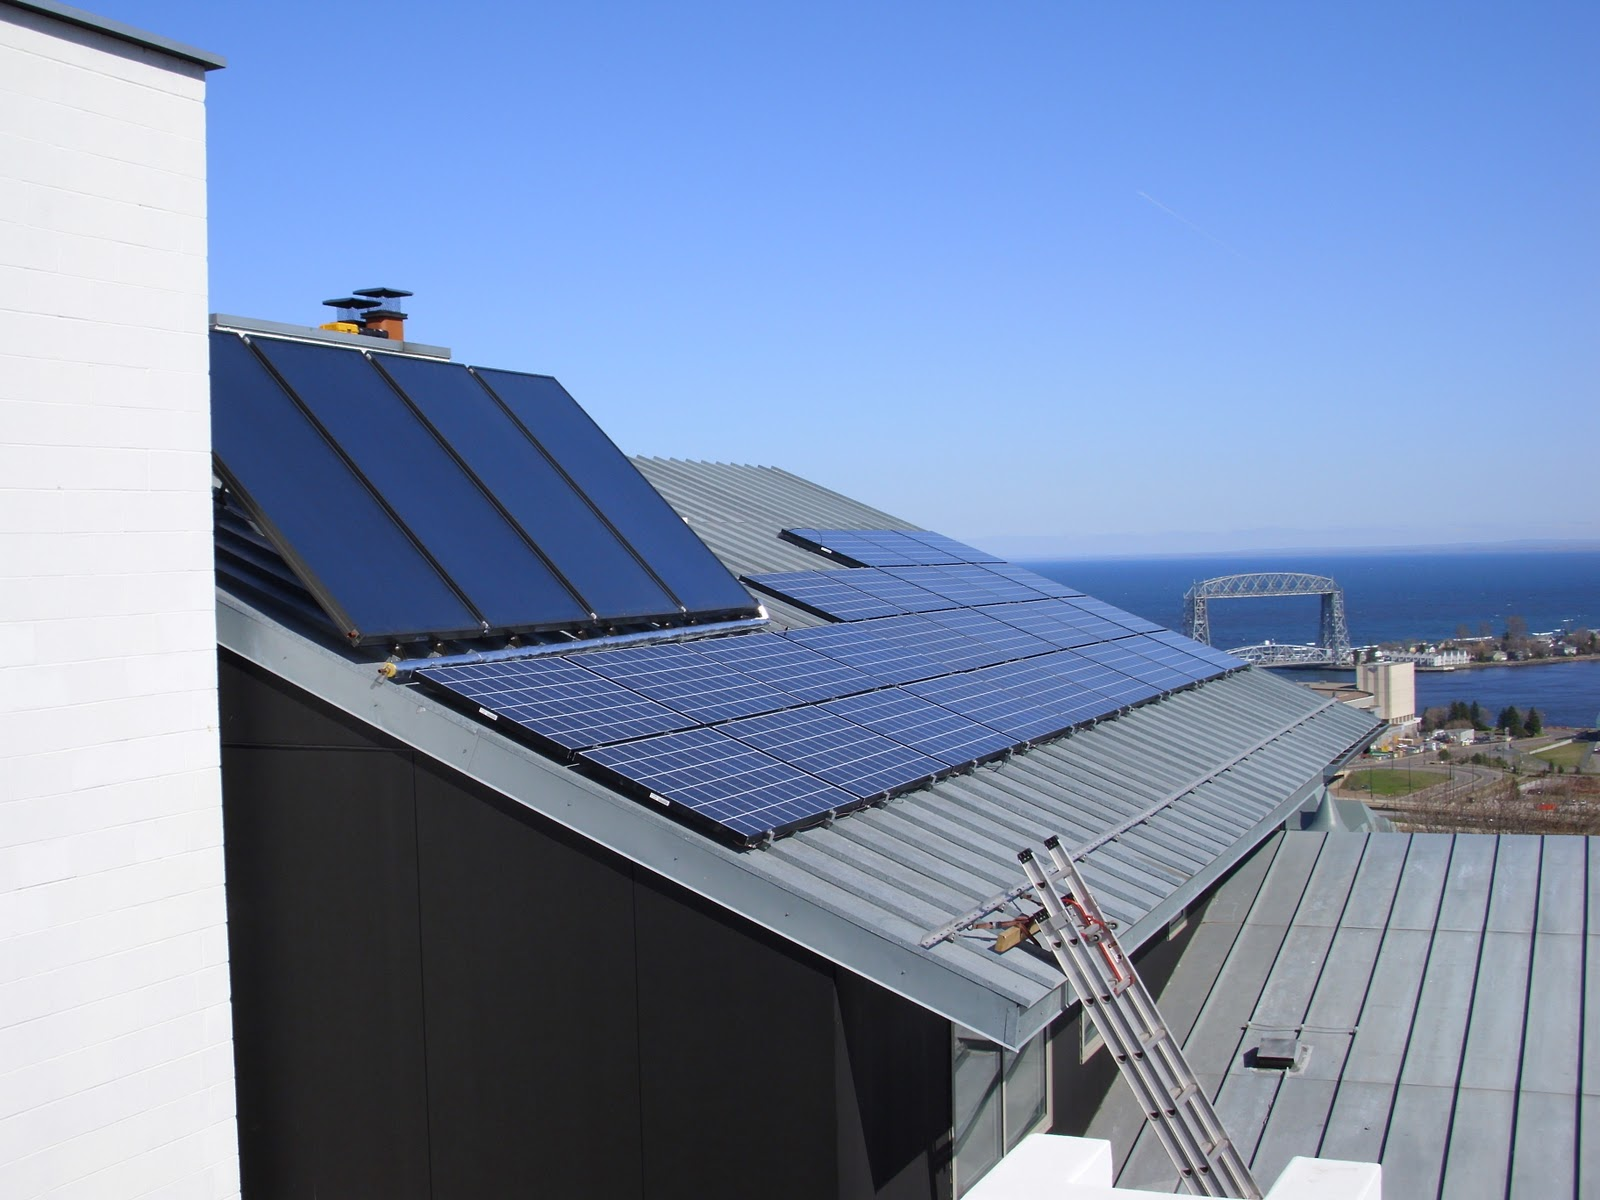 Solar panels on roof of a home in by the ocean daytime